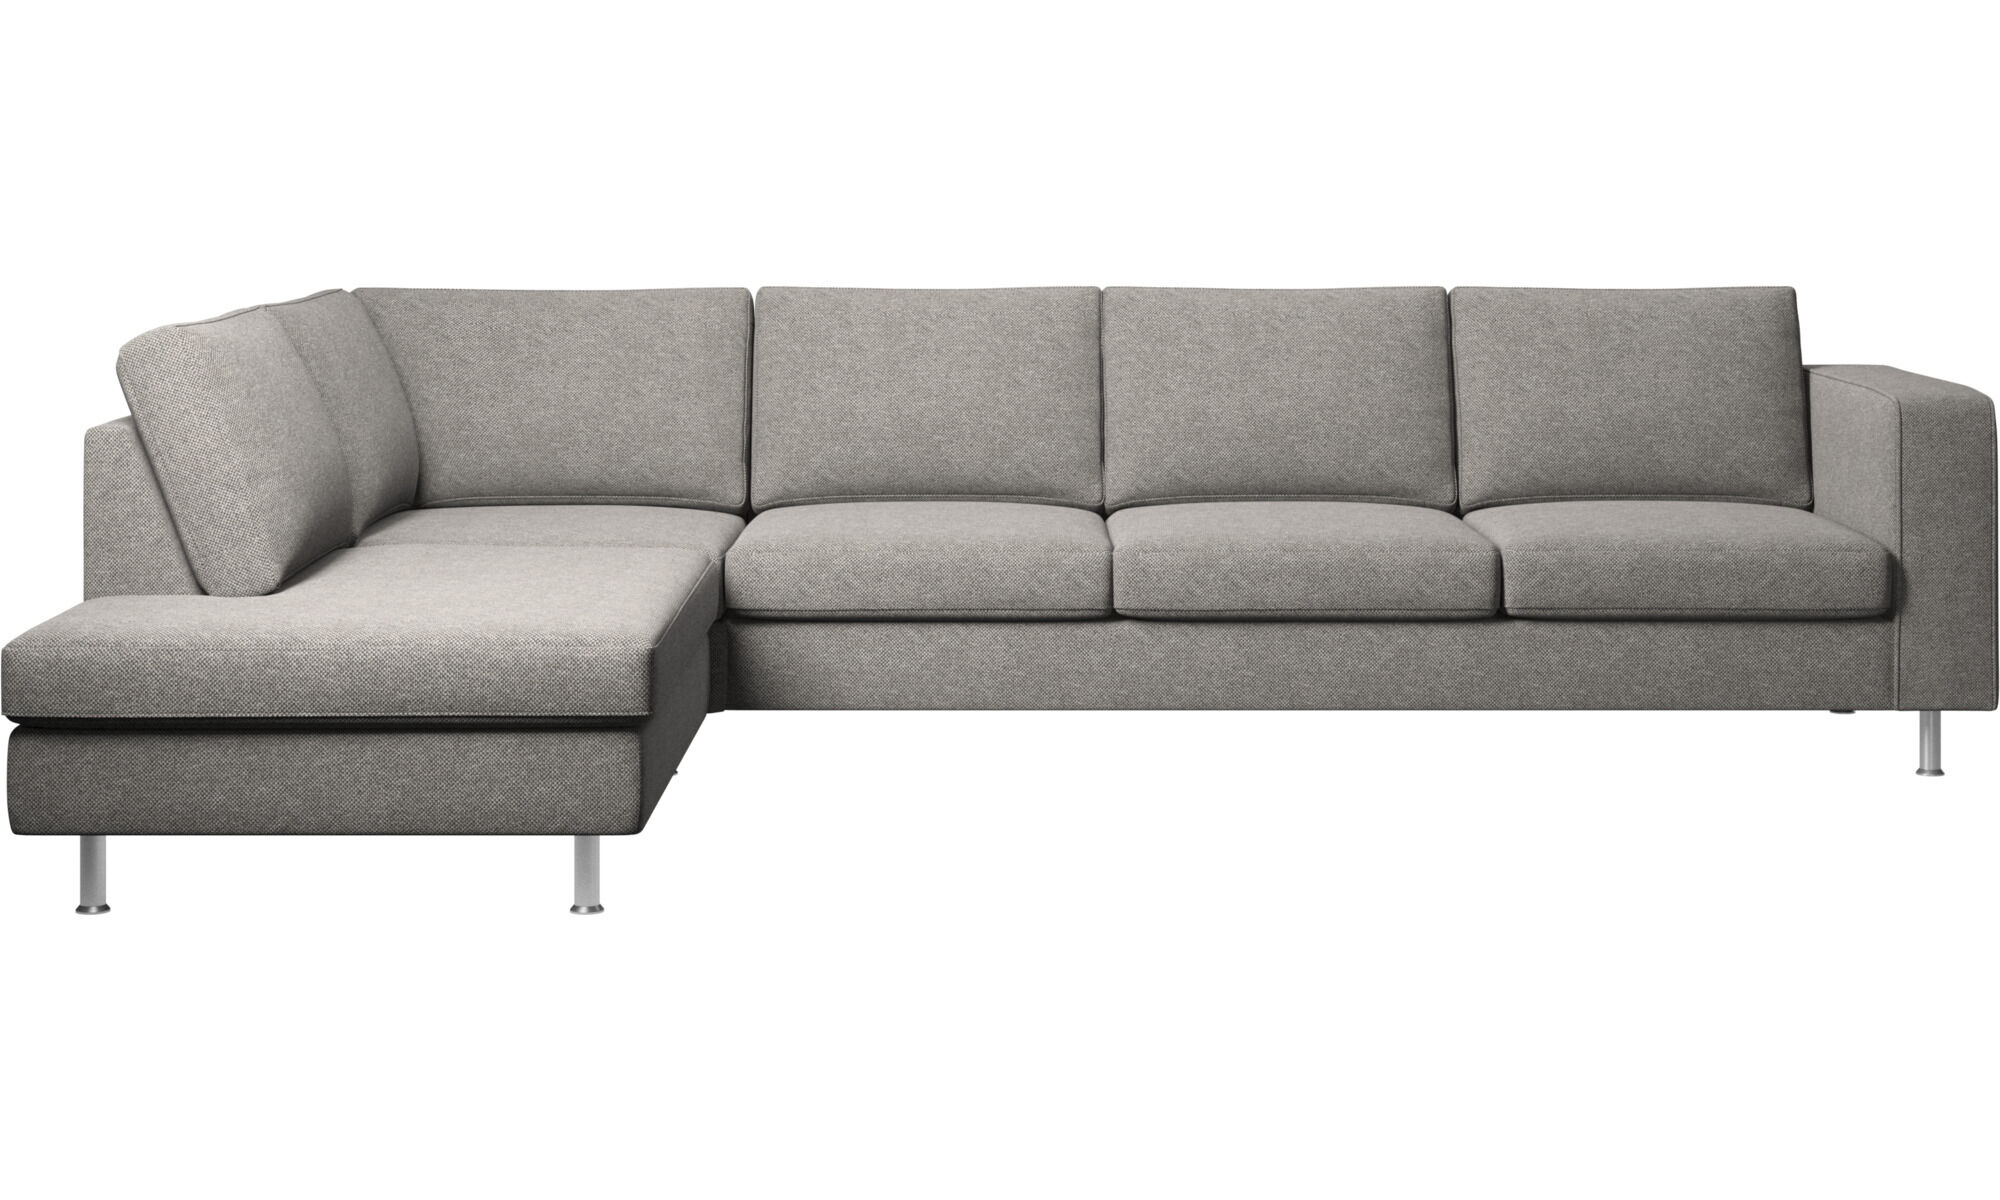 Sofas With Open End   Indivi Corner Sofa With Lounging Unit   Grey   Fabric